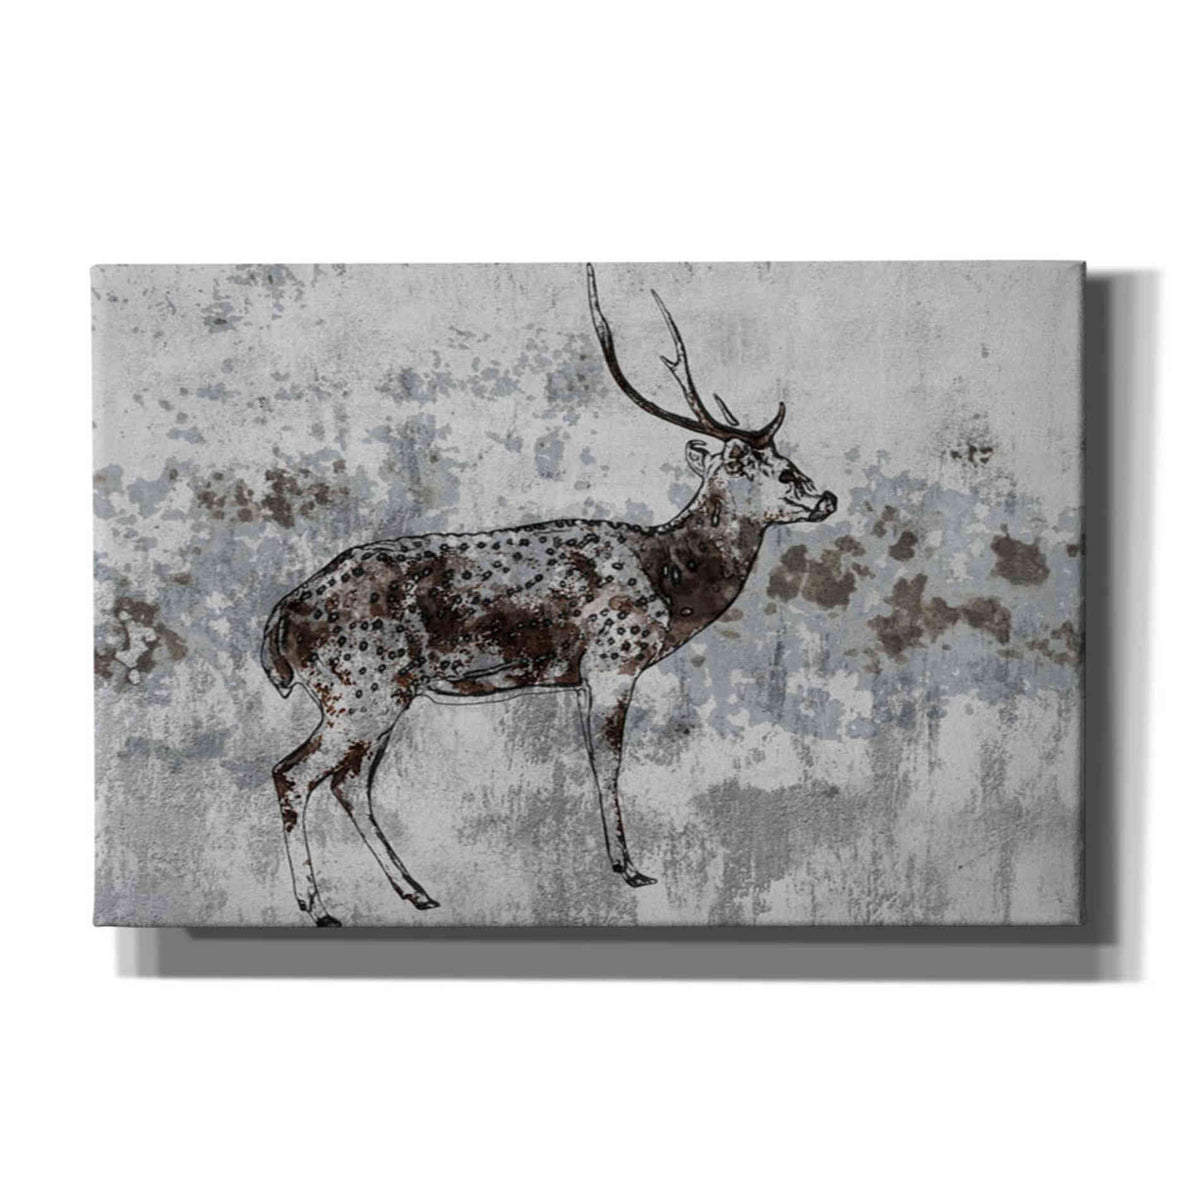 Epic Graffiti 'Sika Deer 1' by Irena Orlov, Giclee Canvas Wall Art